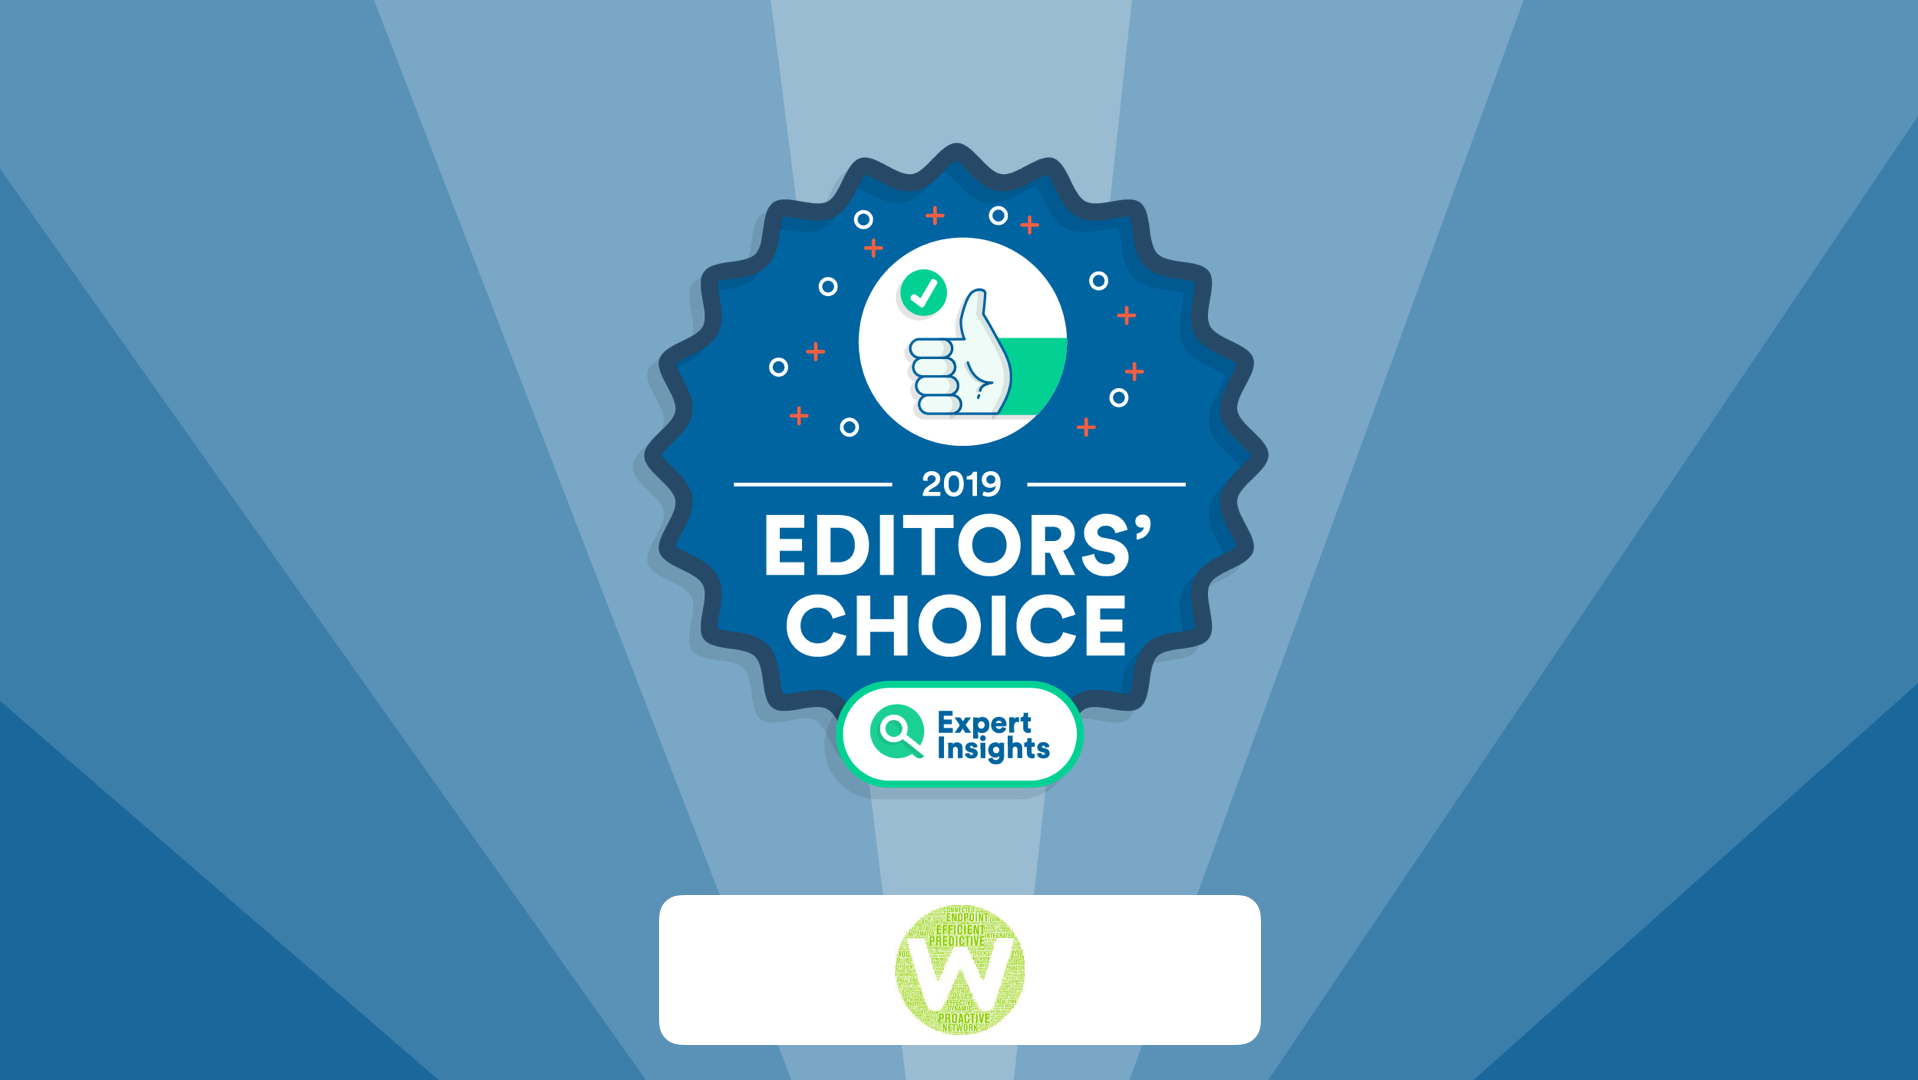 Webroot wins editors choice award